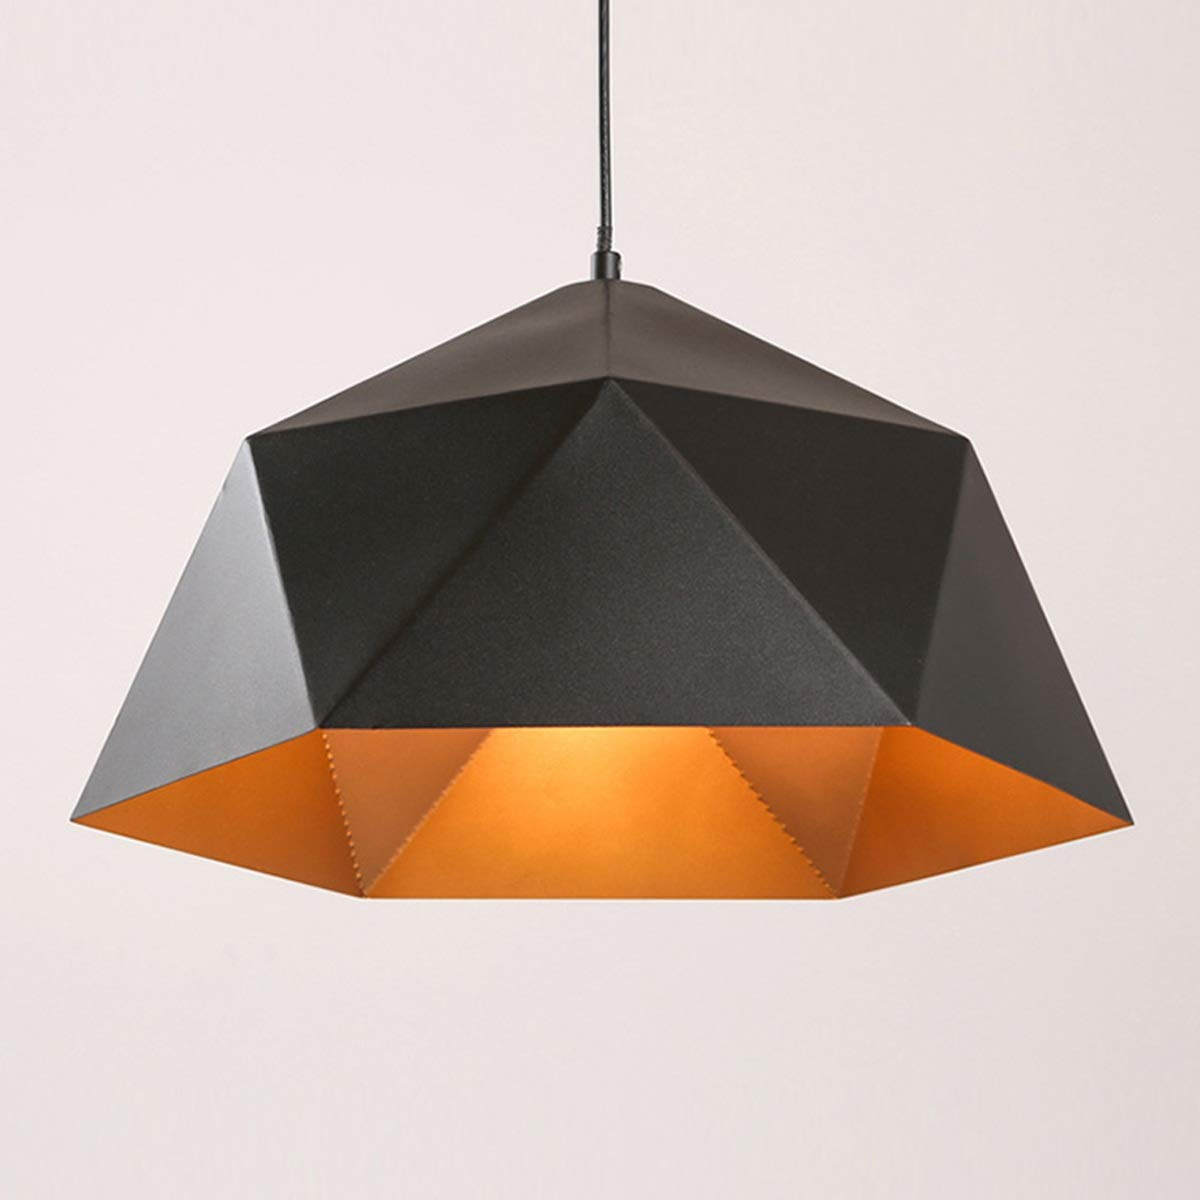 NANGE Wrought Iron Diamond Pendant Lamp, Industrial Wind Ancient Ways Geometry Pot Droplight,Cafe Restaurant Chandelier,E27(Without Light Source) (Color : Black, Size : AC 110V)